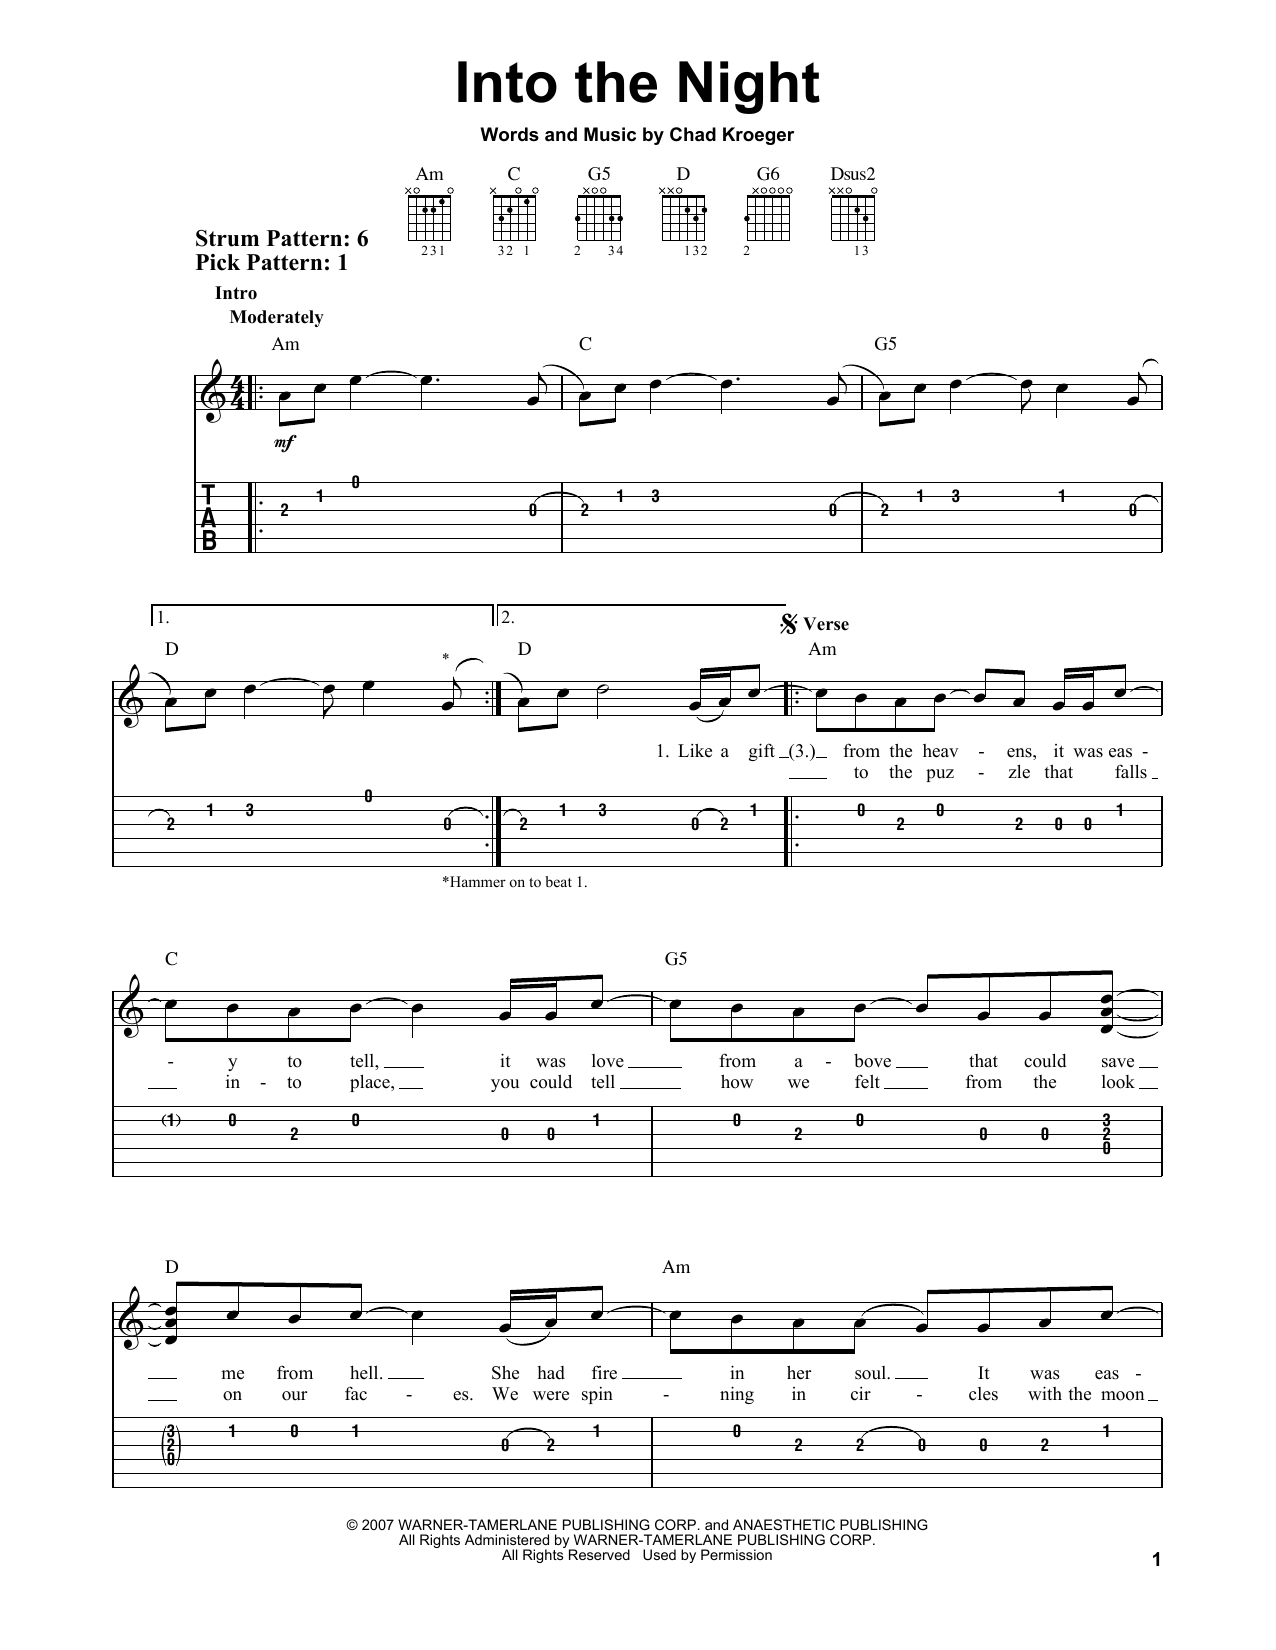 Sheet Music Digital Files To Print Licensed Santana Digital Sheet